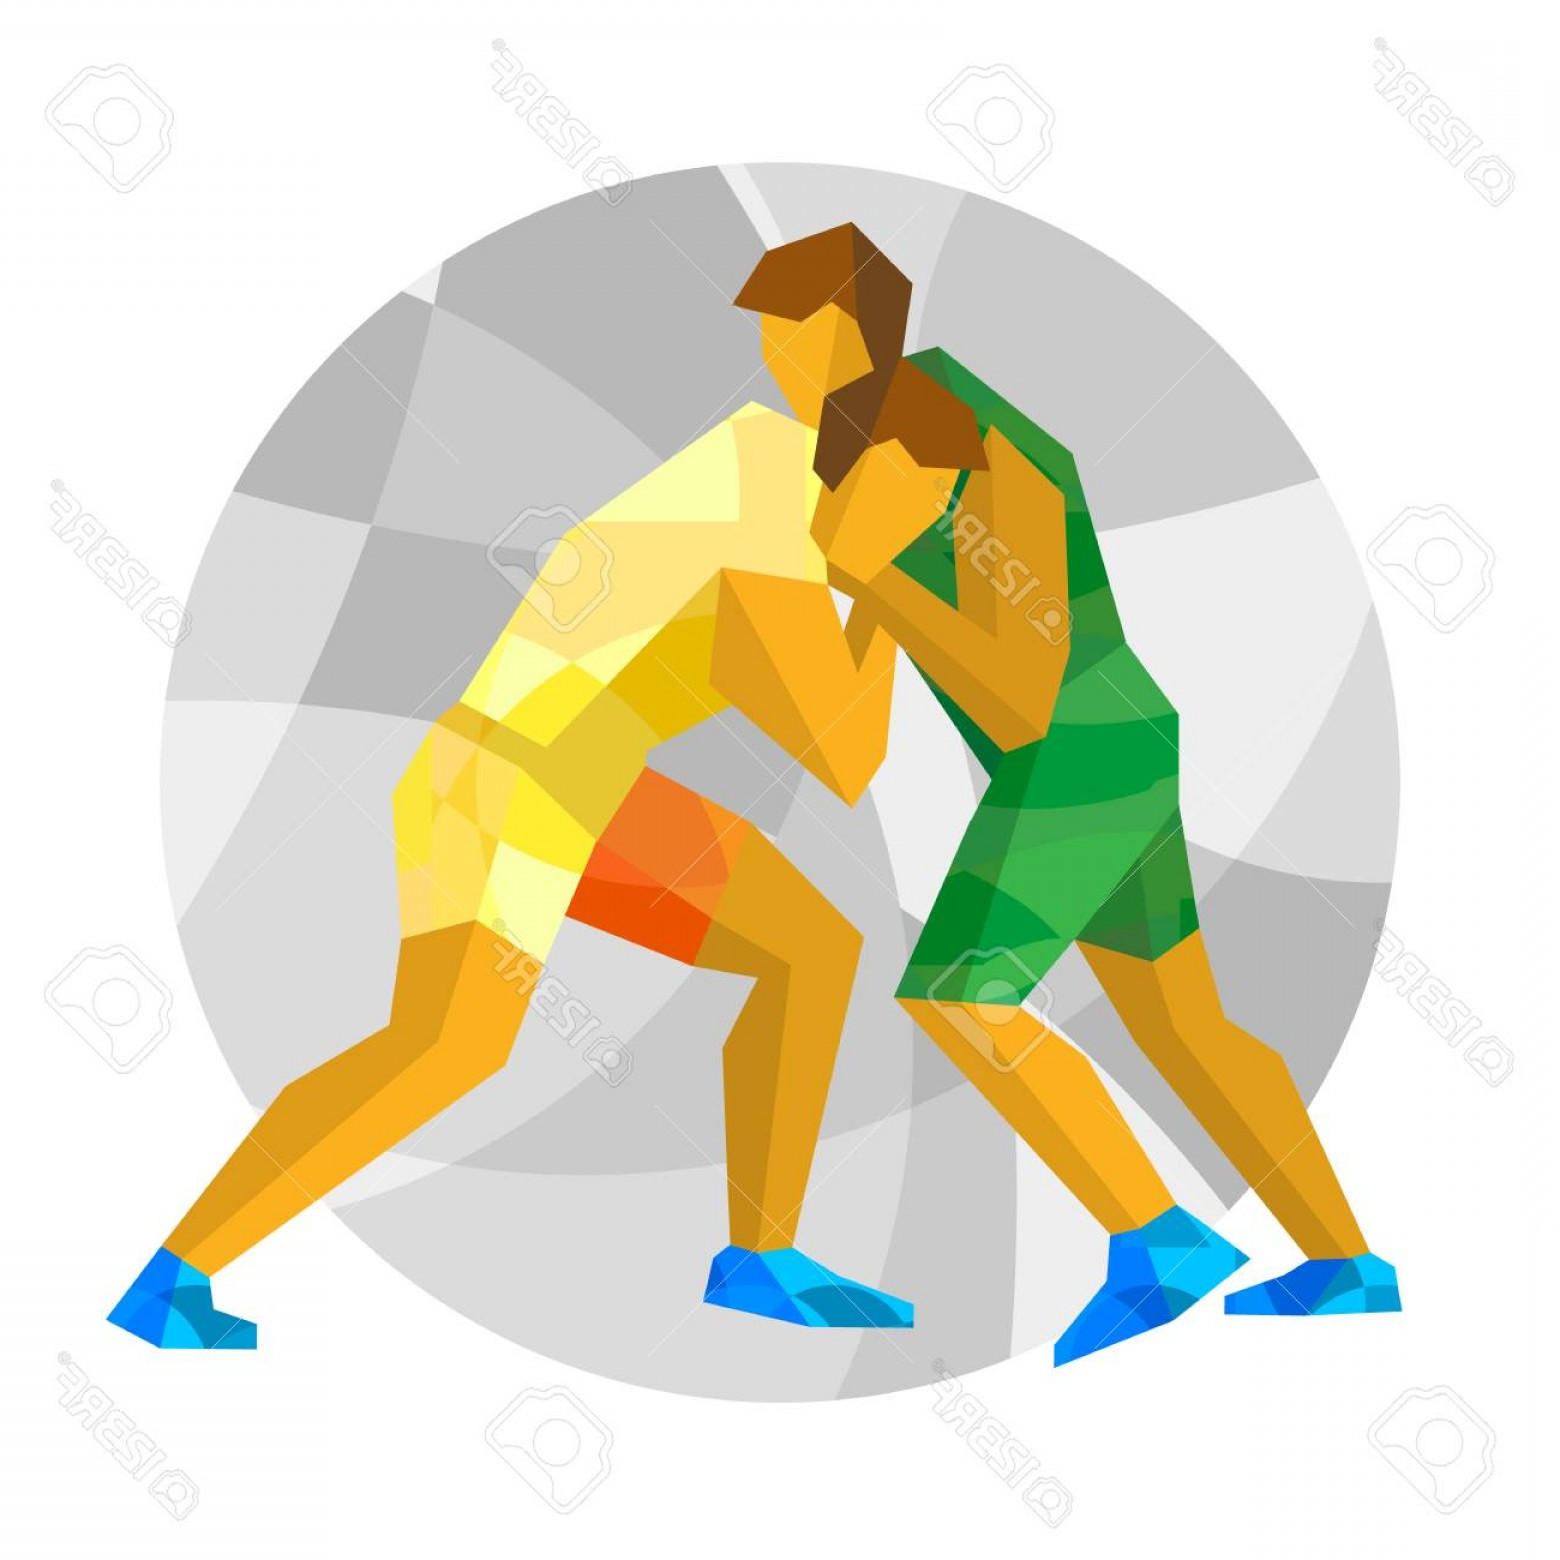 1560x1560 Photostock Vector Wrestling With Abstract Patterns Flat Athlete